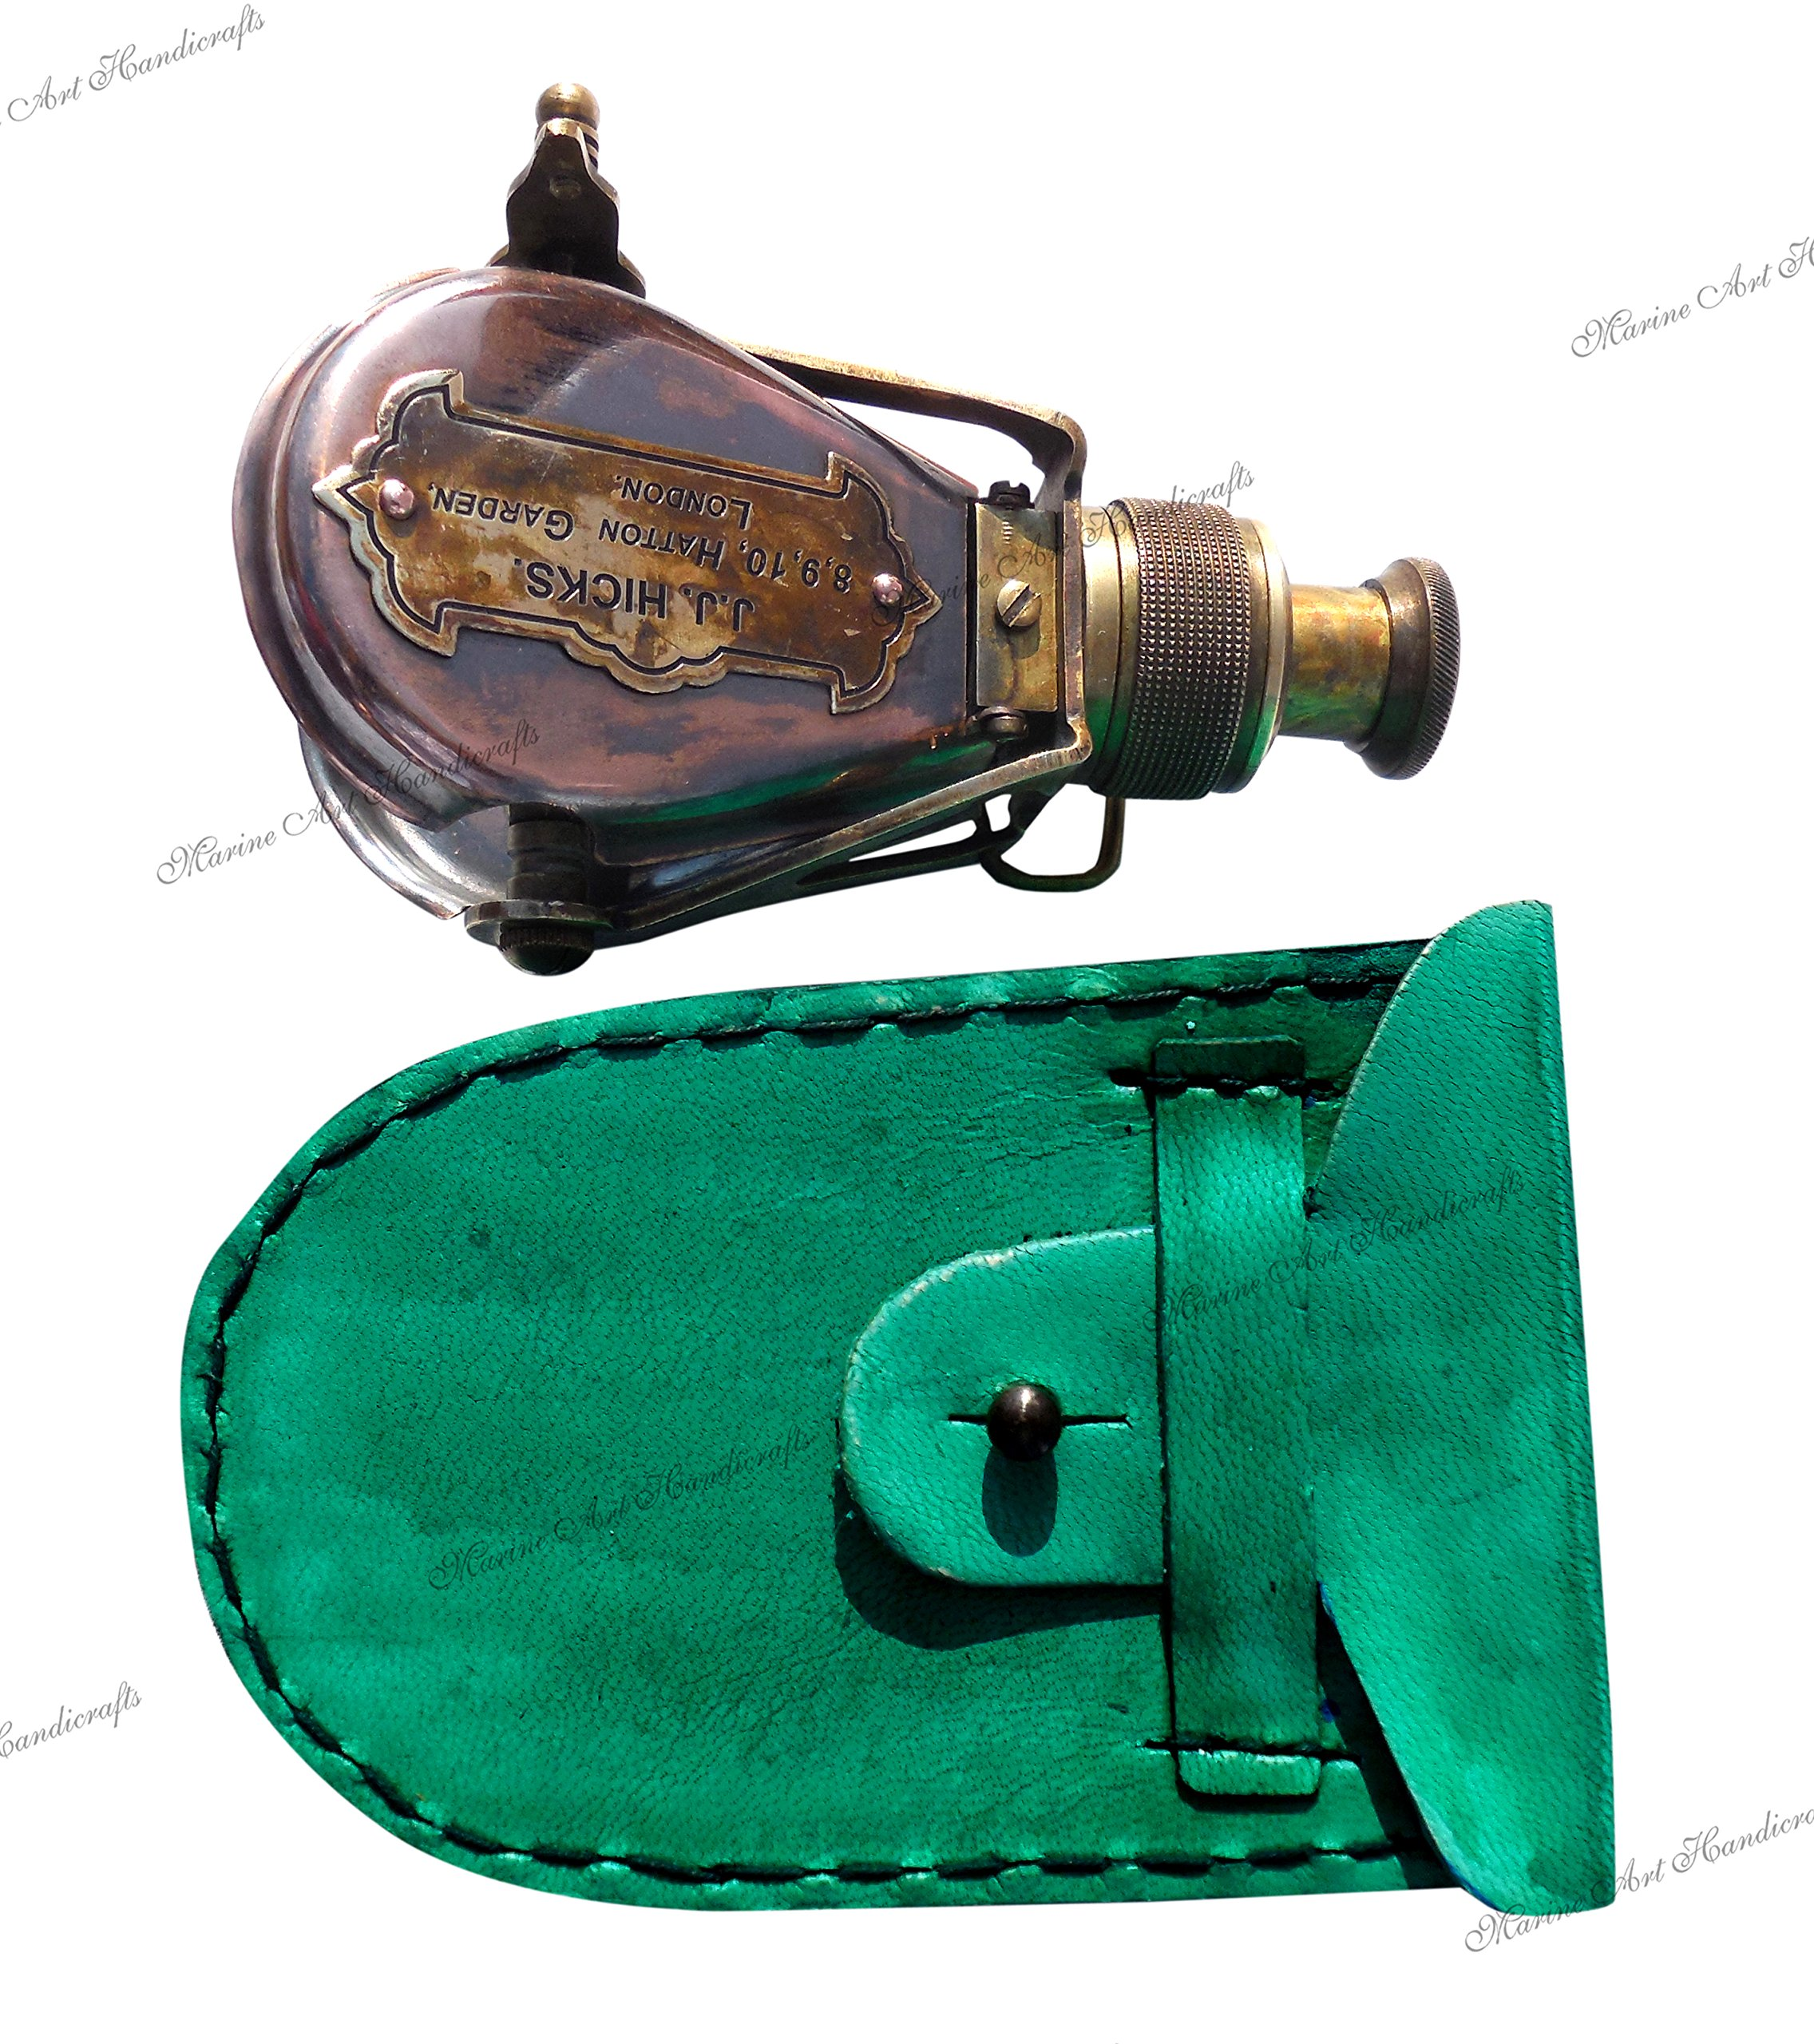 MAH Antique-Style-Ships Pocket-Monocular-Brass Telescope-with-Leather-Box. C-3232 by MAH